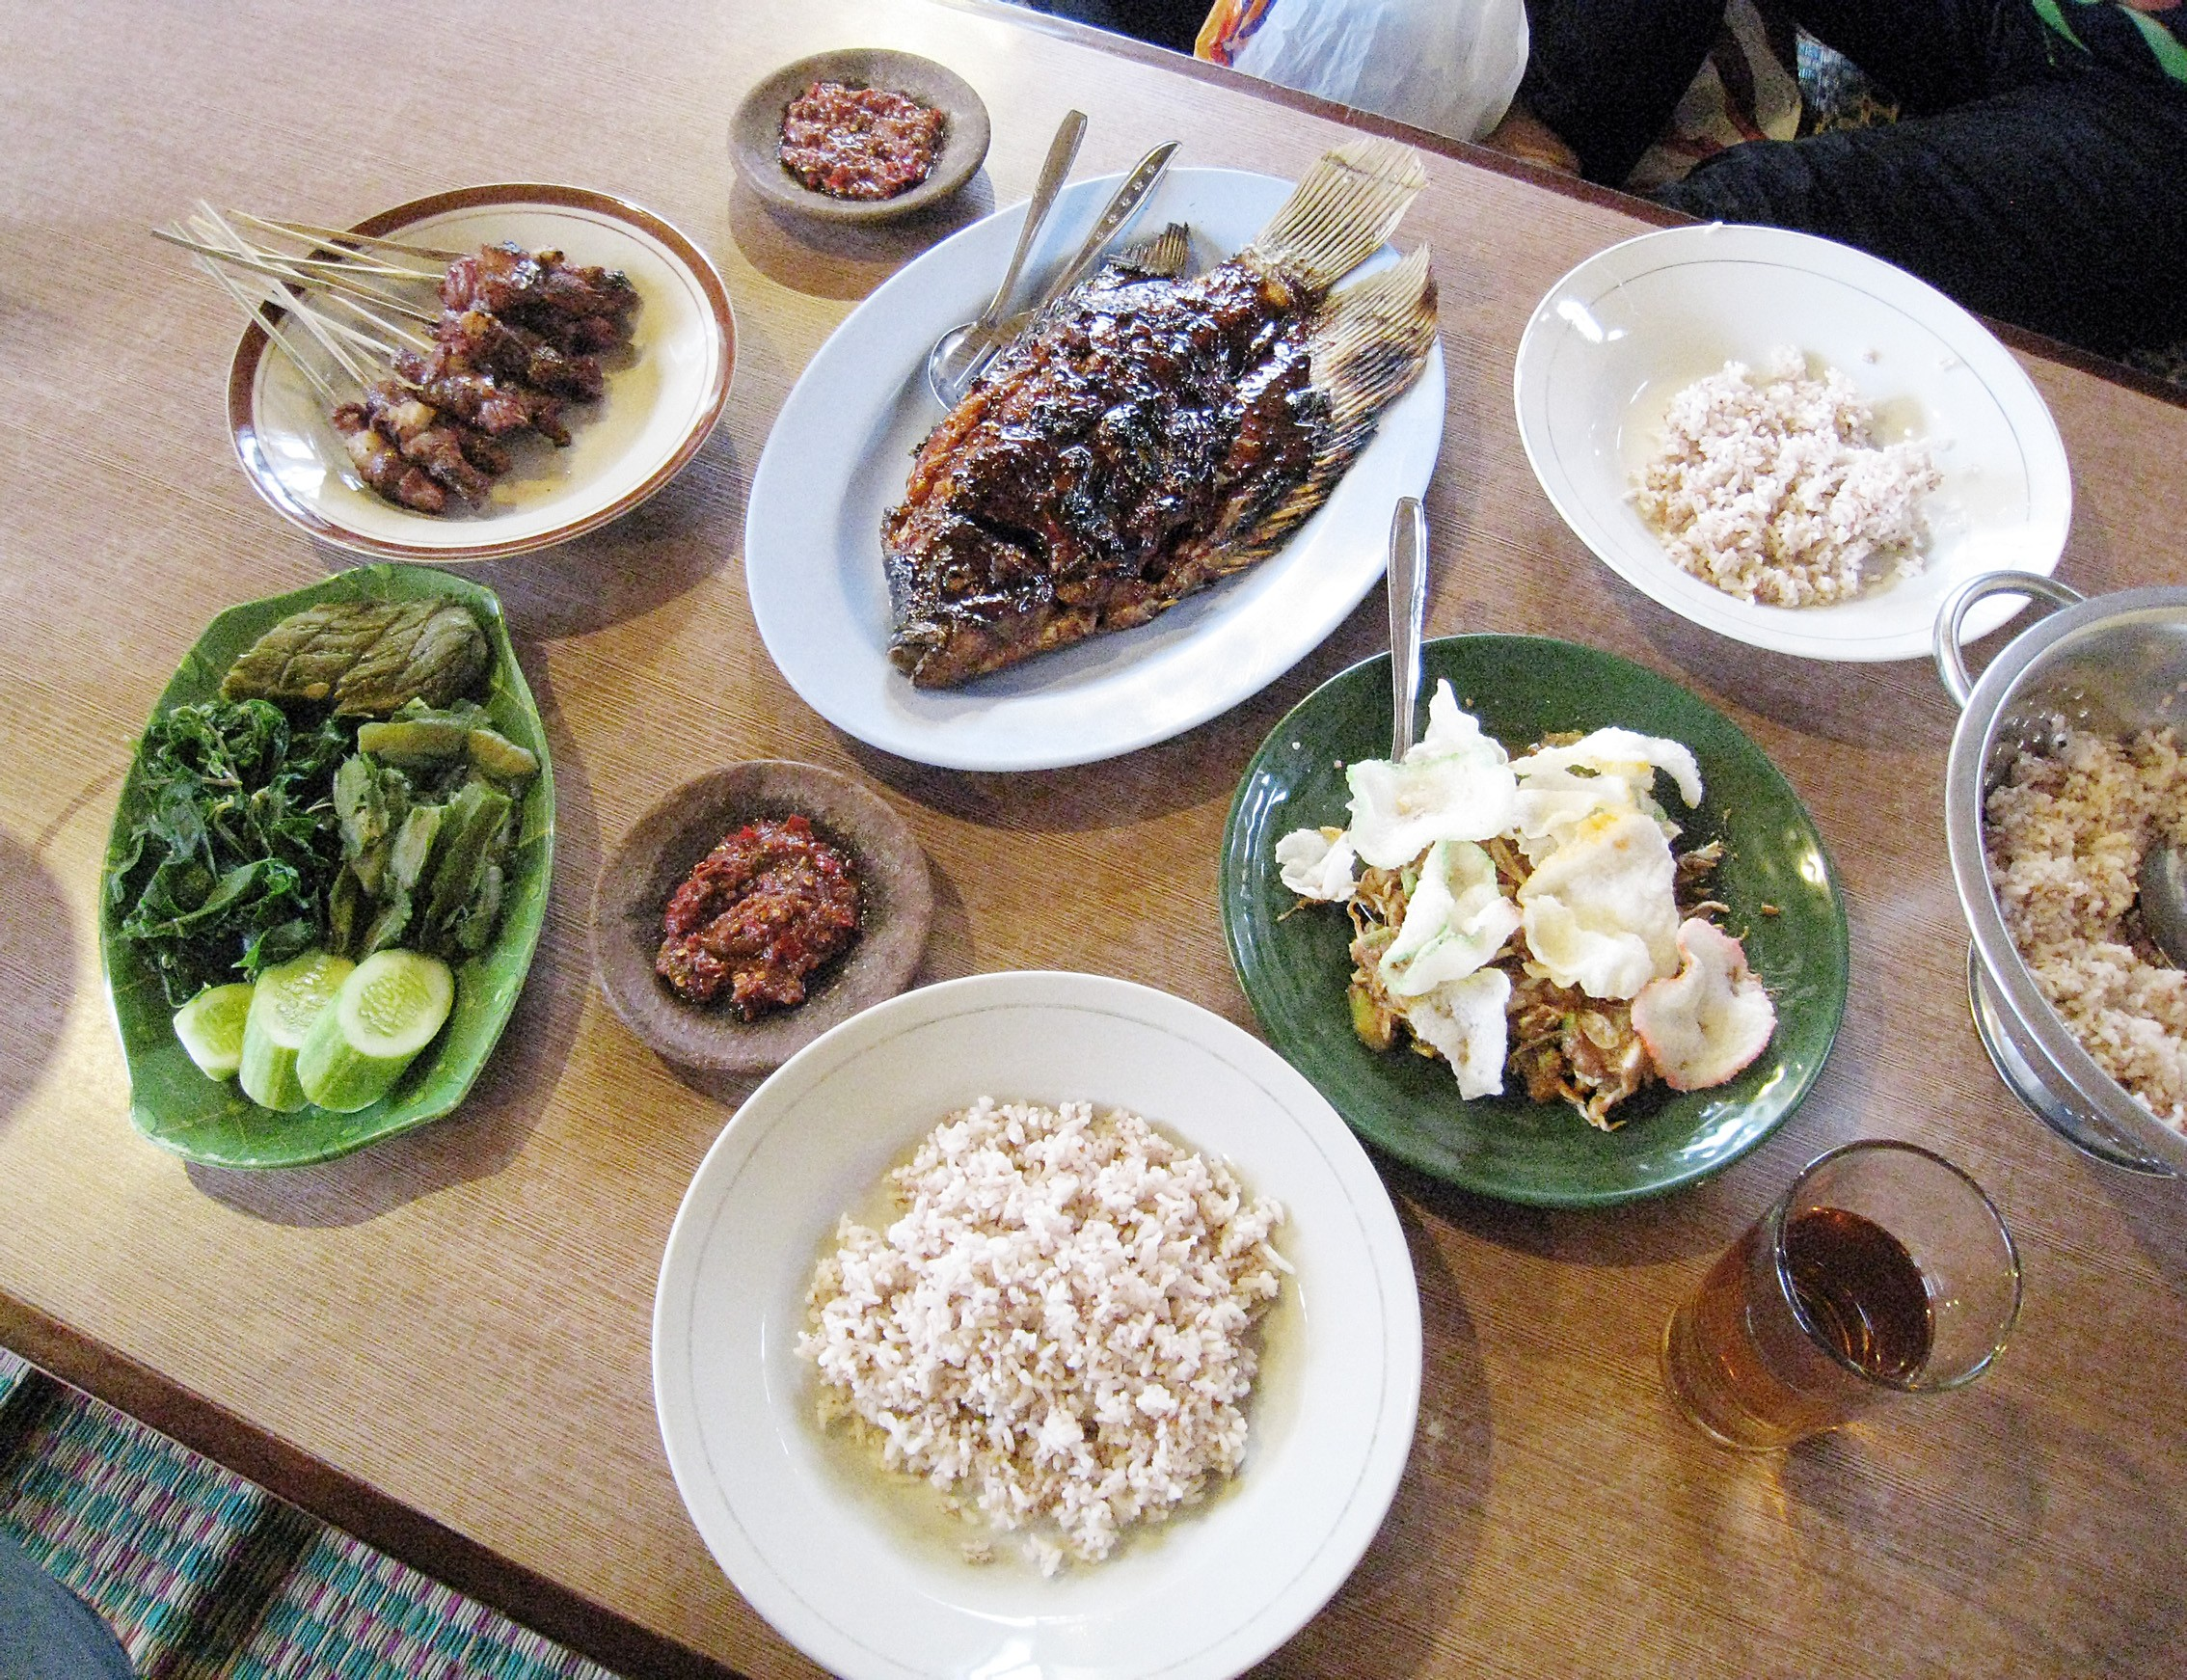 Indonesian typical munal meal consist of nasi steamed rice lauk pauk fish and meat side dishes and sayur mayur ve ables author Gunawan